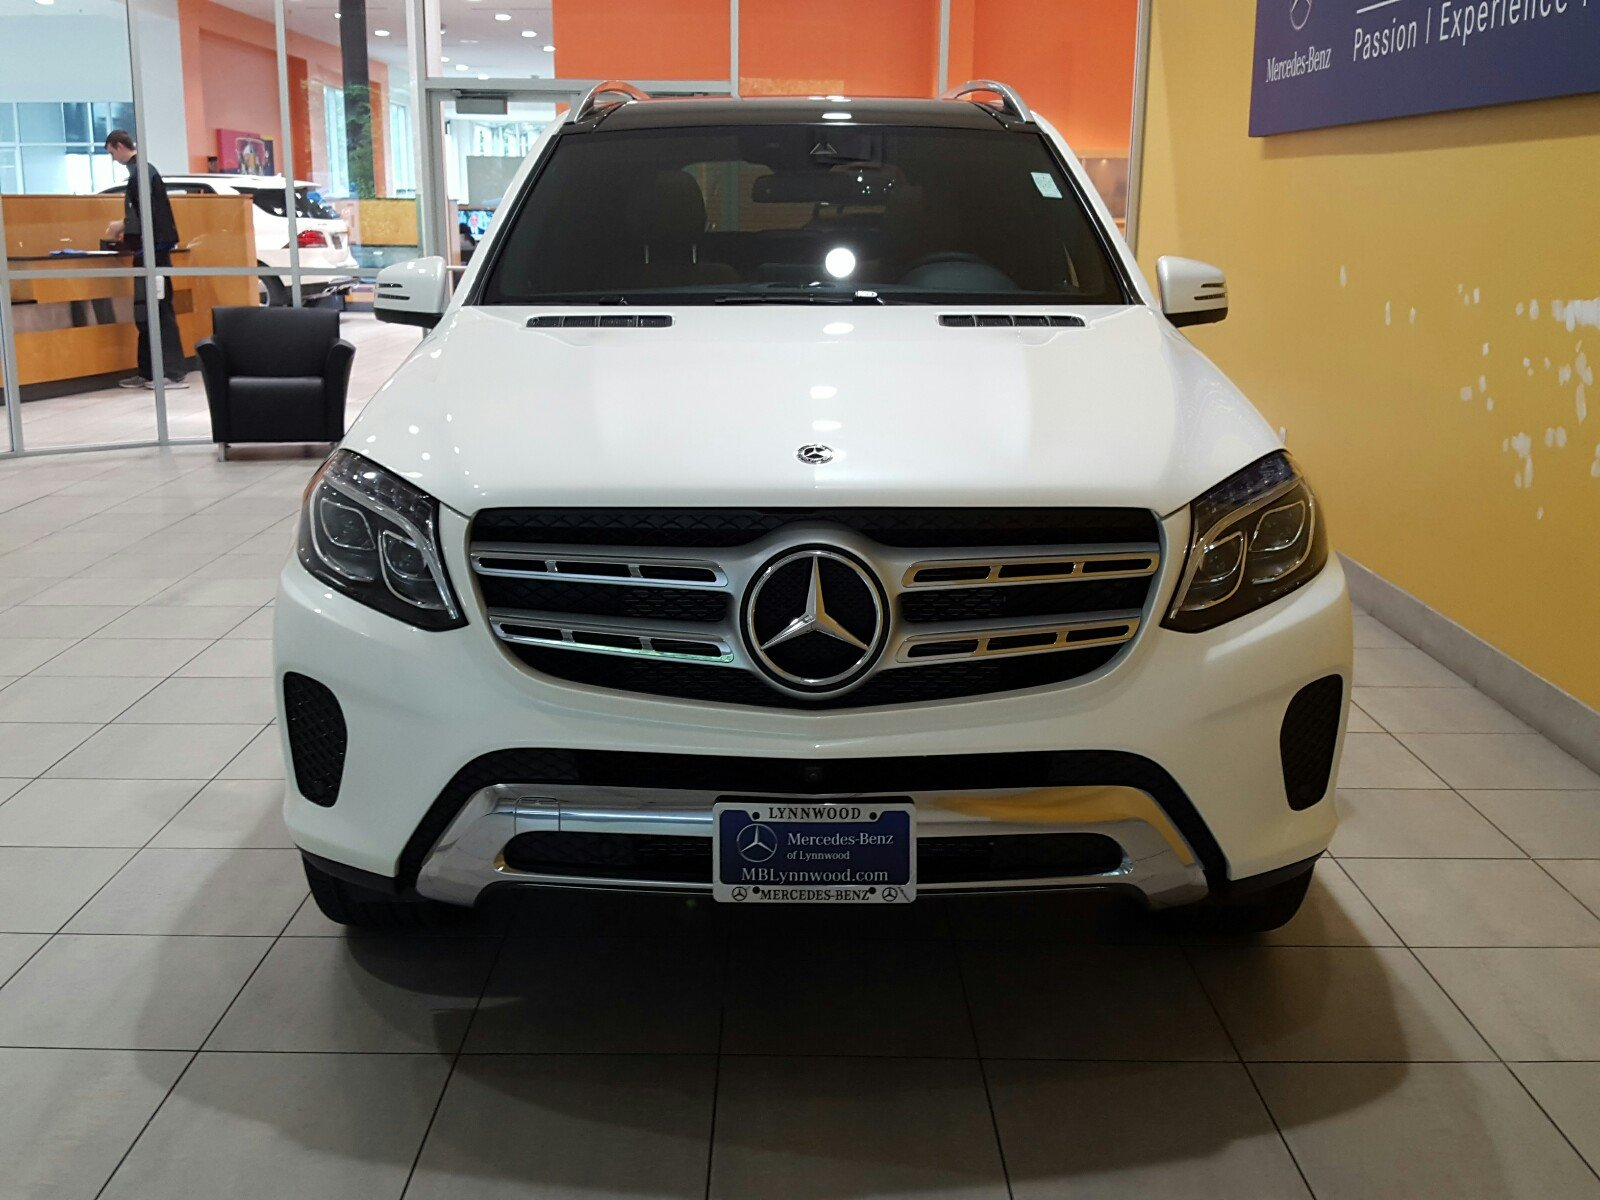 New 2017 mercedes benz gls gls 450 4matic suv in lynnwood for 2017 mercedes benz gls 450